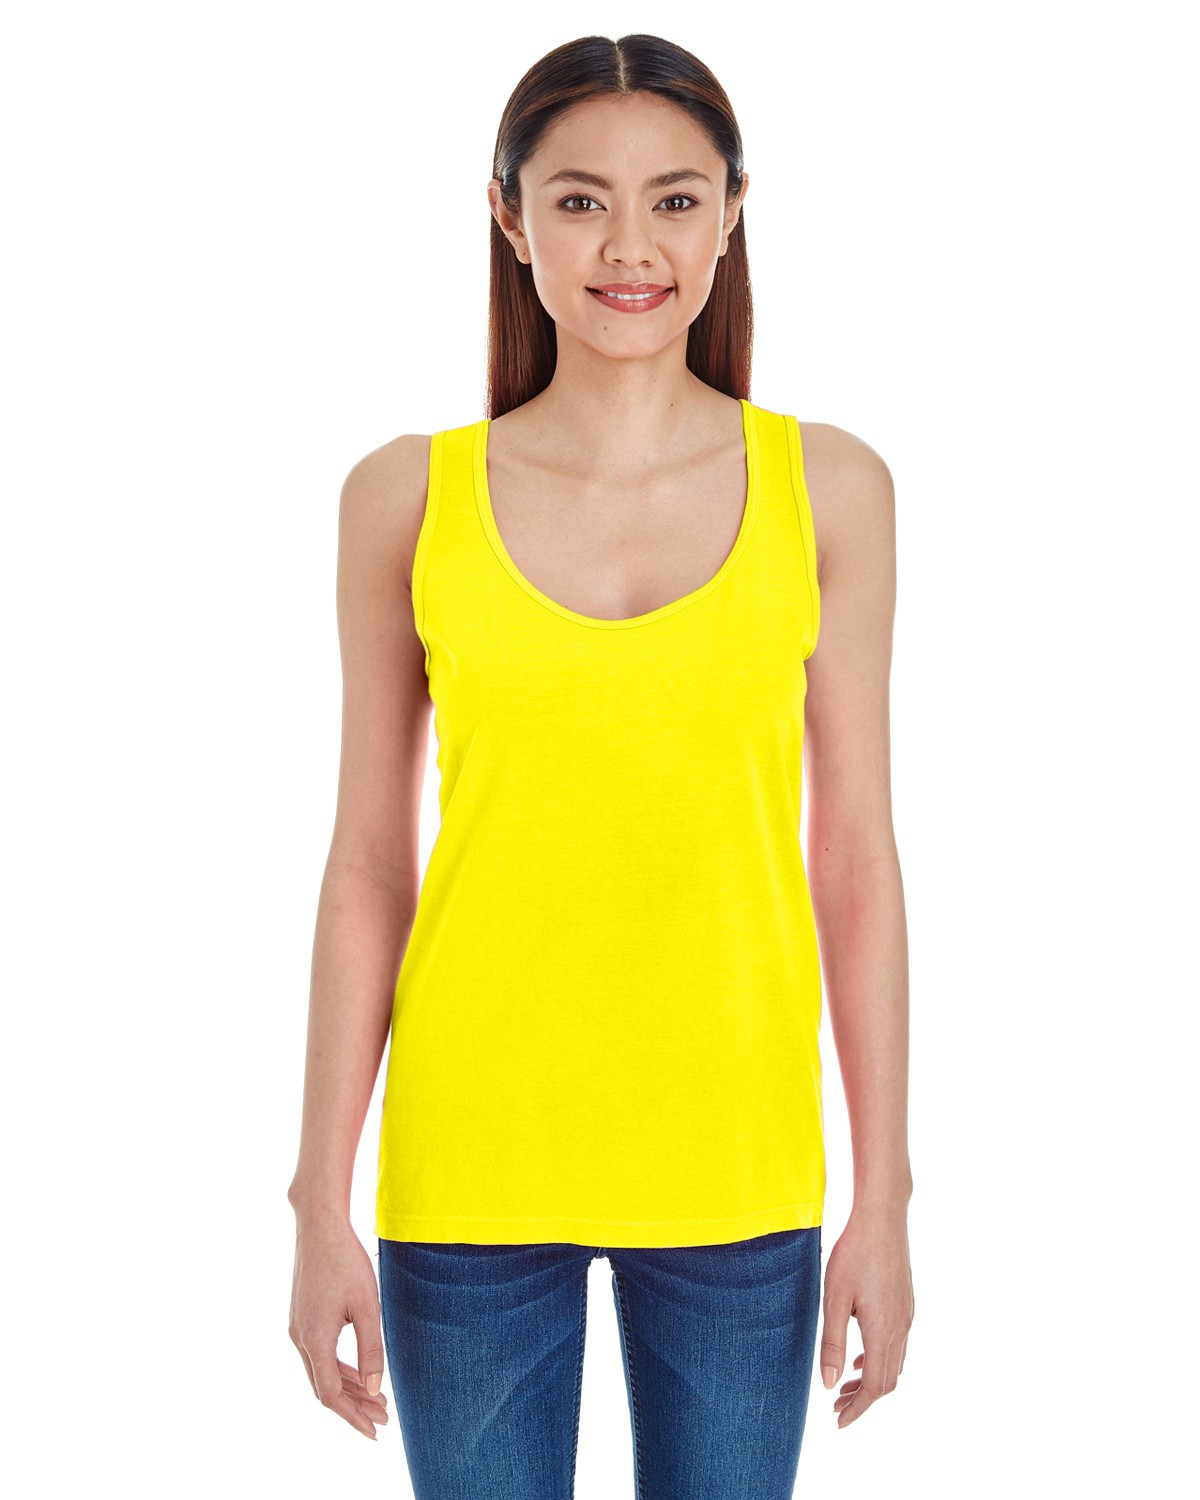 4260L Comfort Colors NEON YELLOW